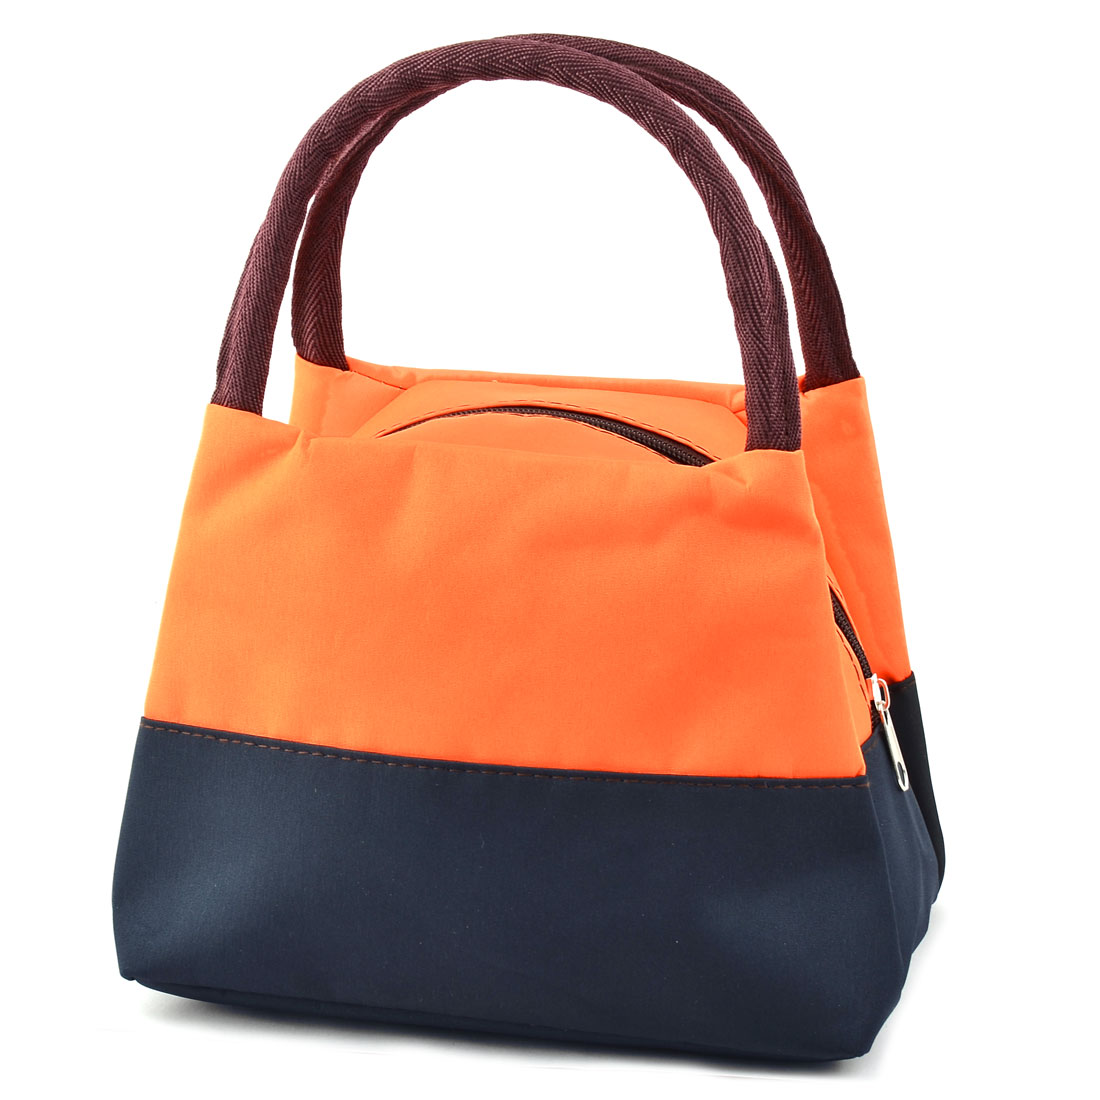 Outdoor Oxford Cloth Zipper Closure Lunch Pouch Tote Cooler Bag Orange Navy Blue